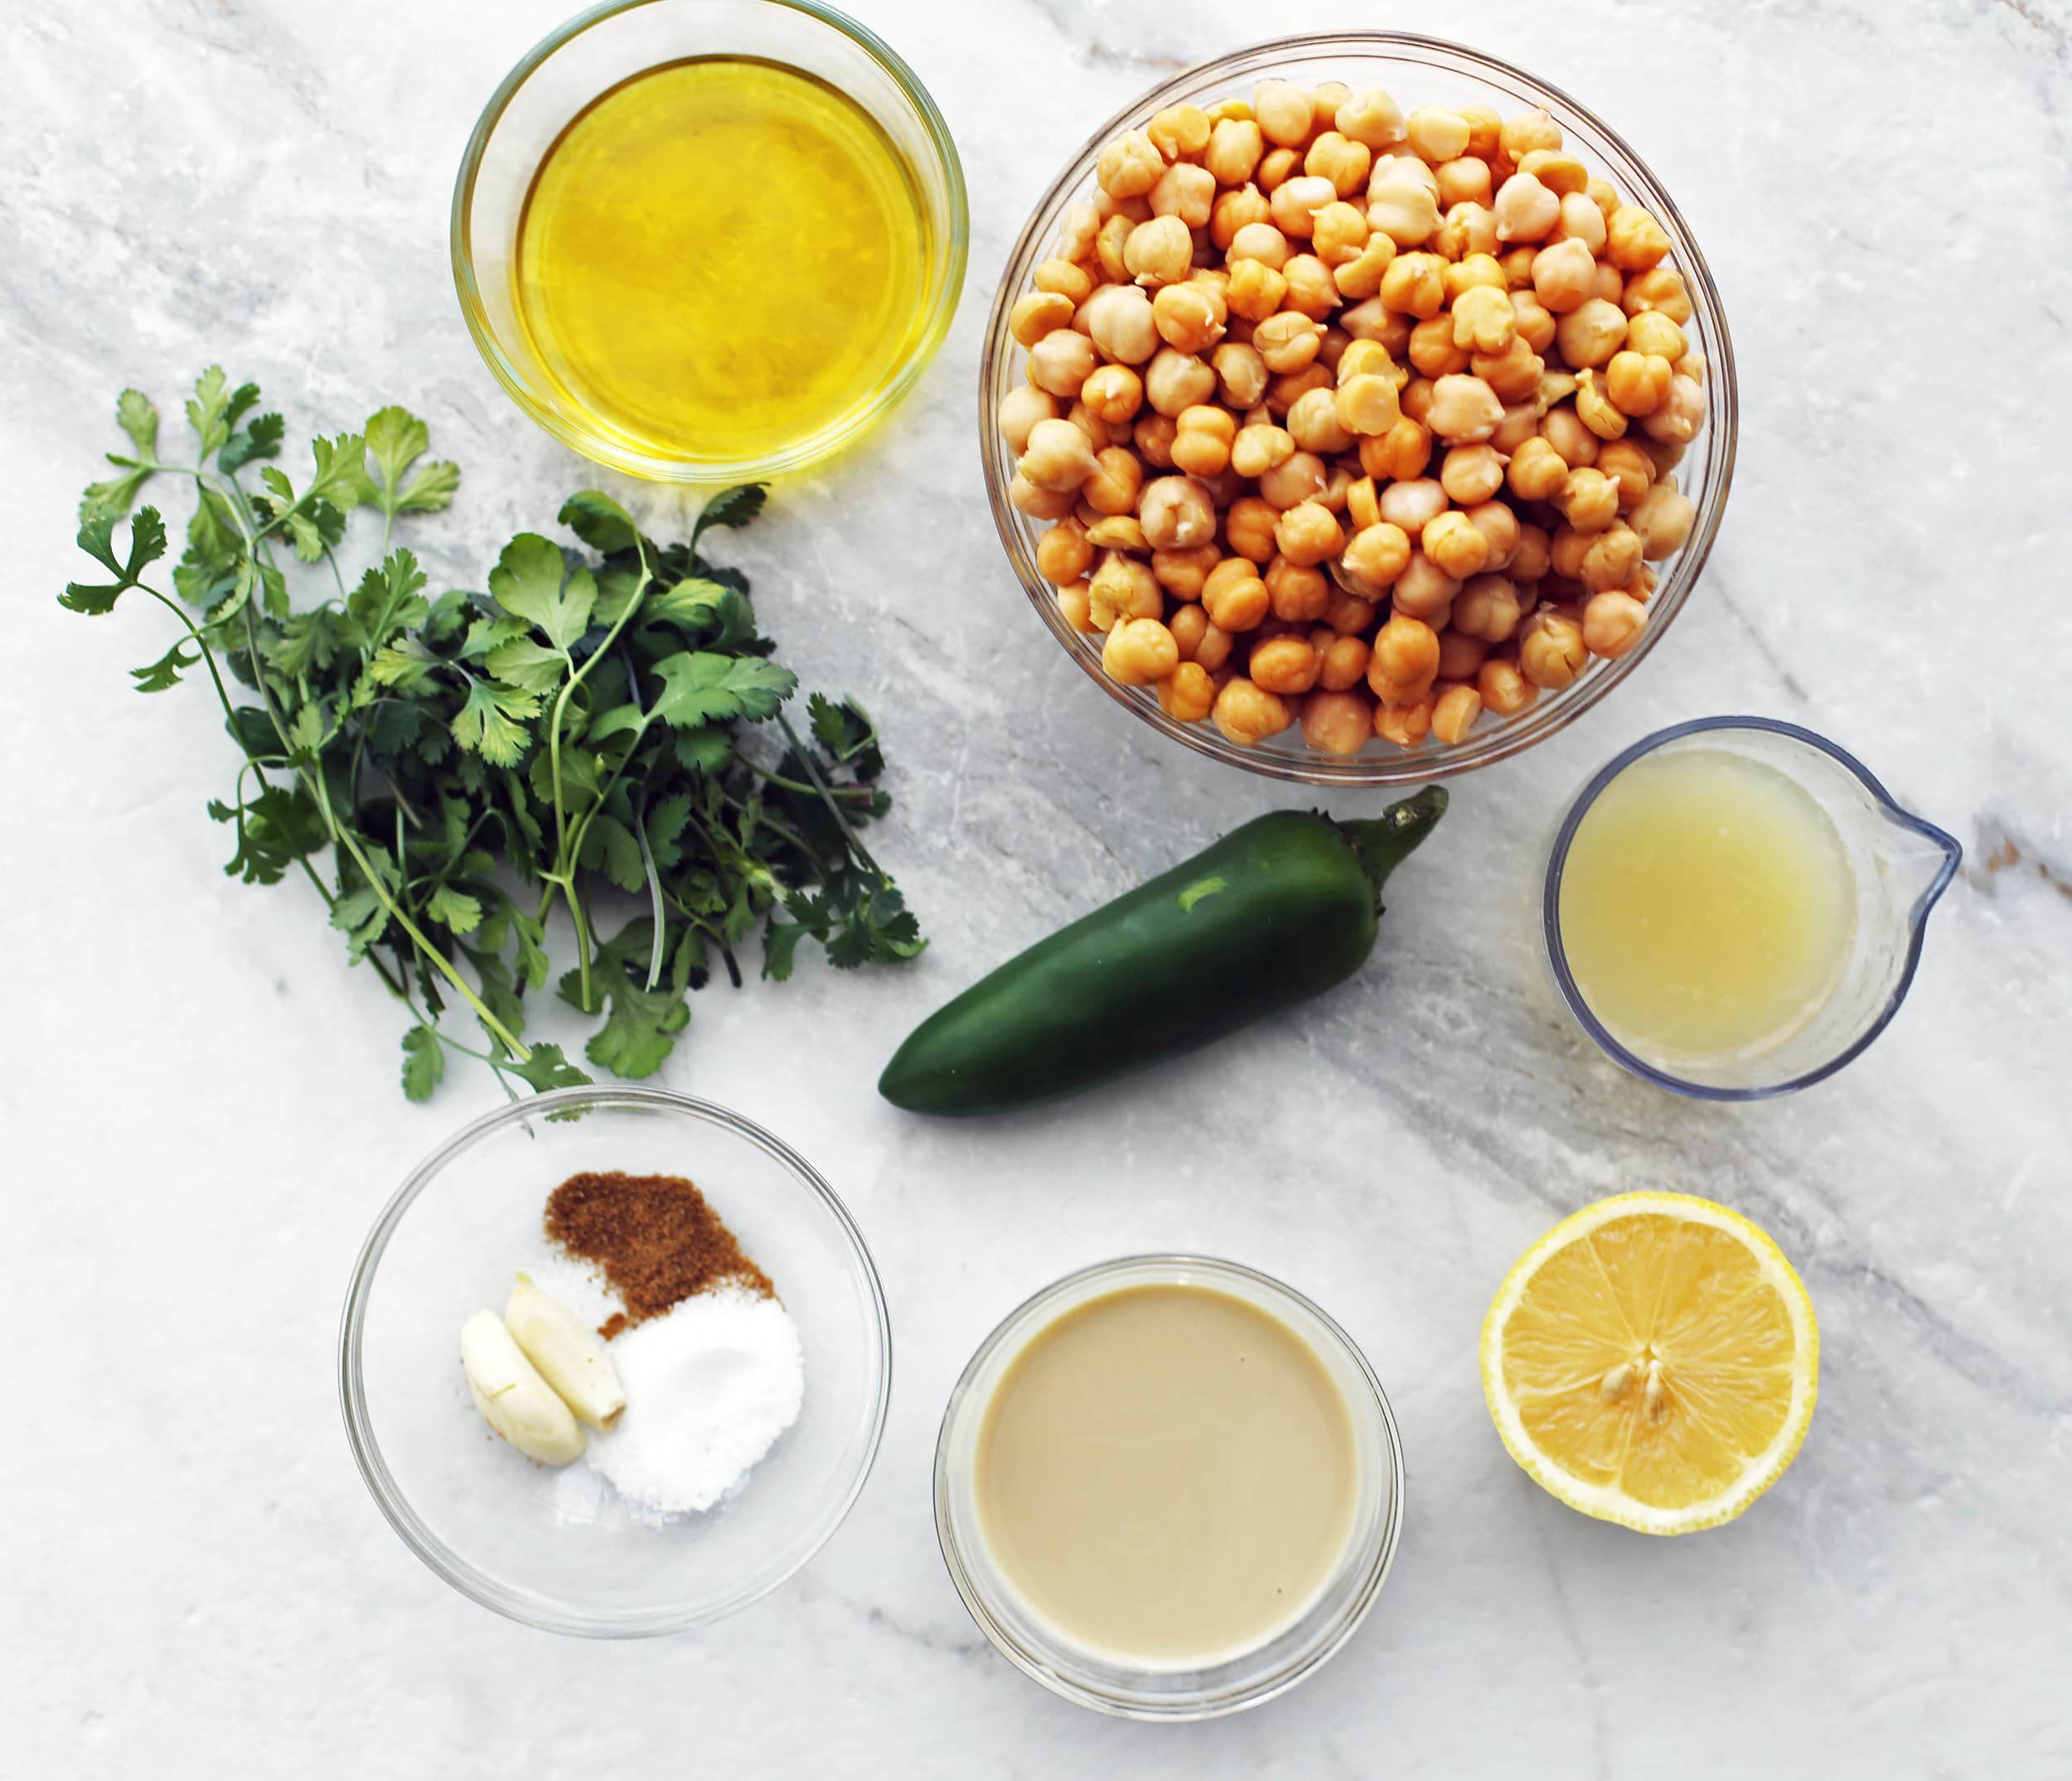 An overhead view of cooked chickpeas, cilantro, jalapeno pepper, tahini, lemon, garlic, olive oil,cumin, and salt.